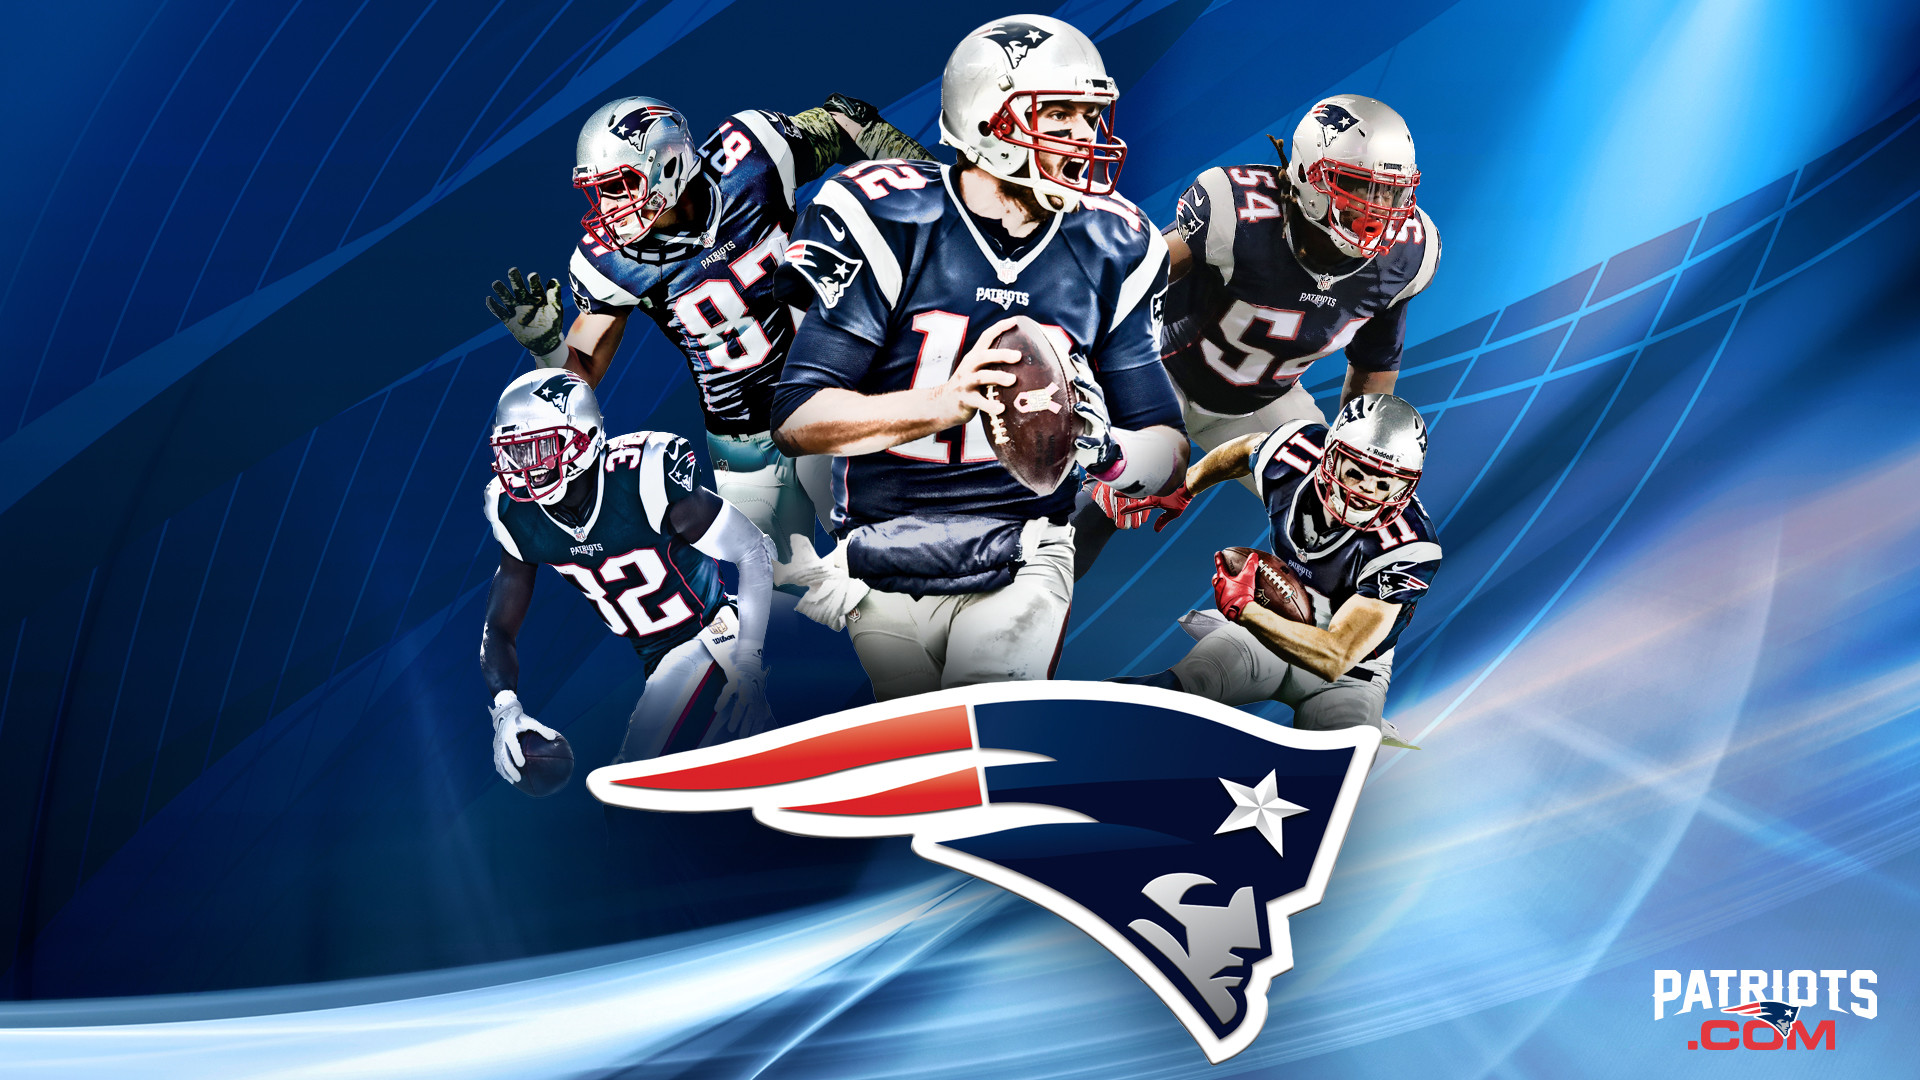 Sport Wallpaper New England Patriots: New England Patriots Wallpapers ·① WallpaperTag